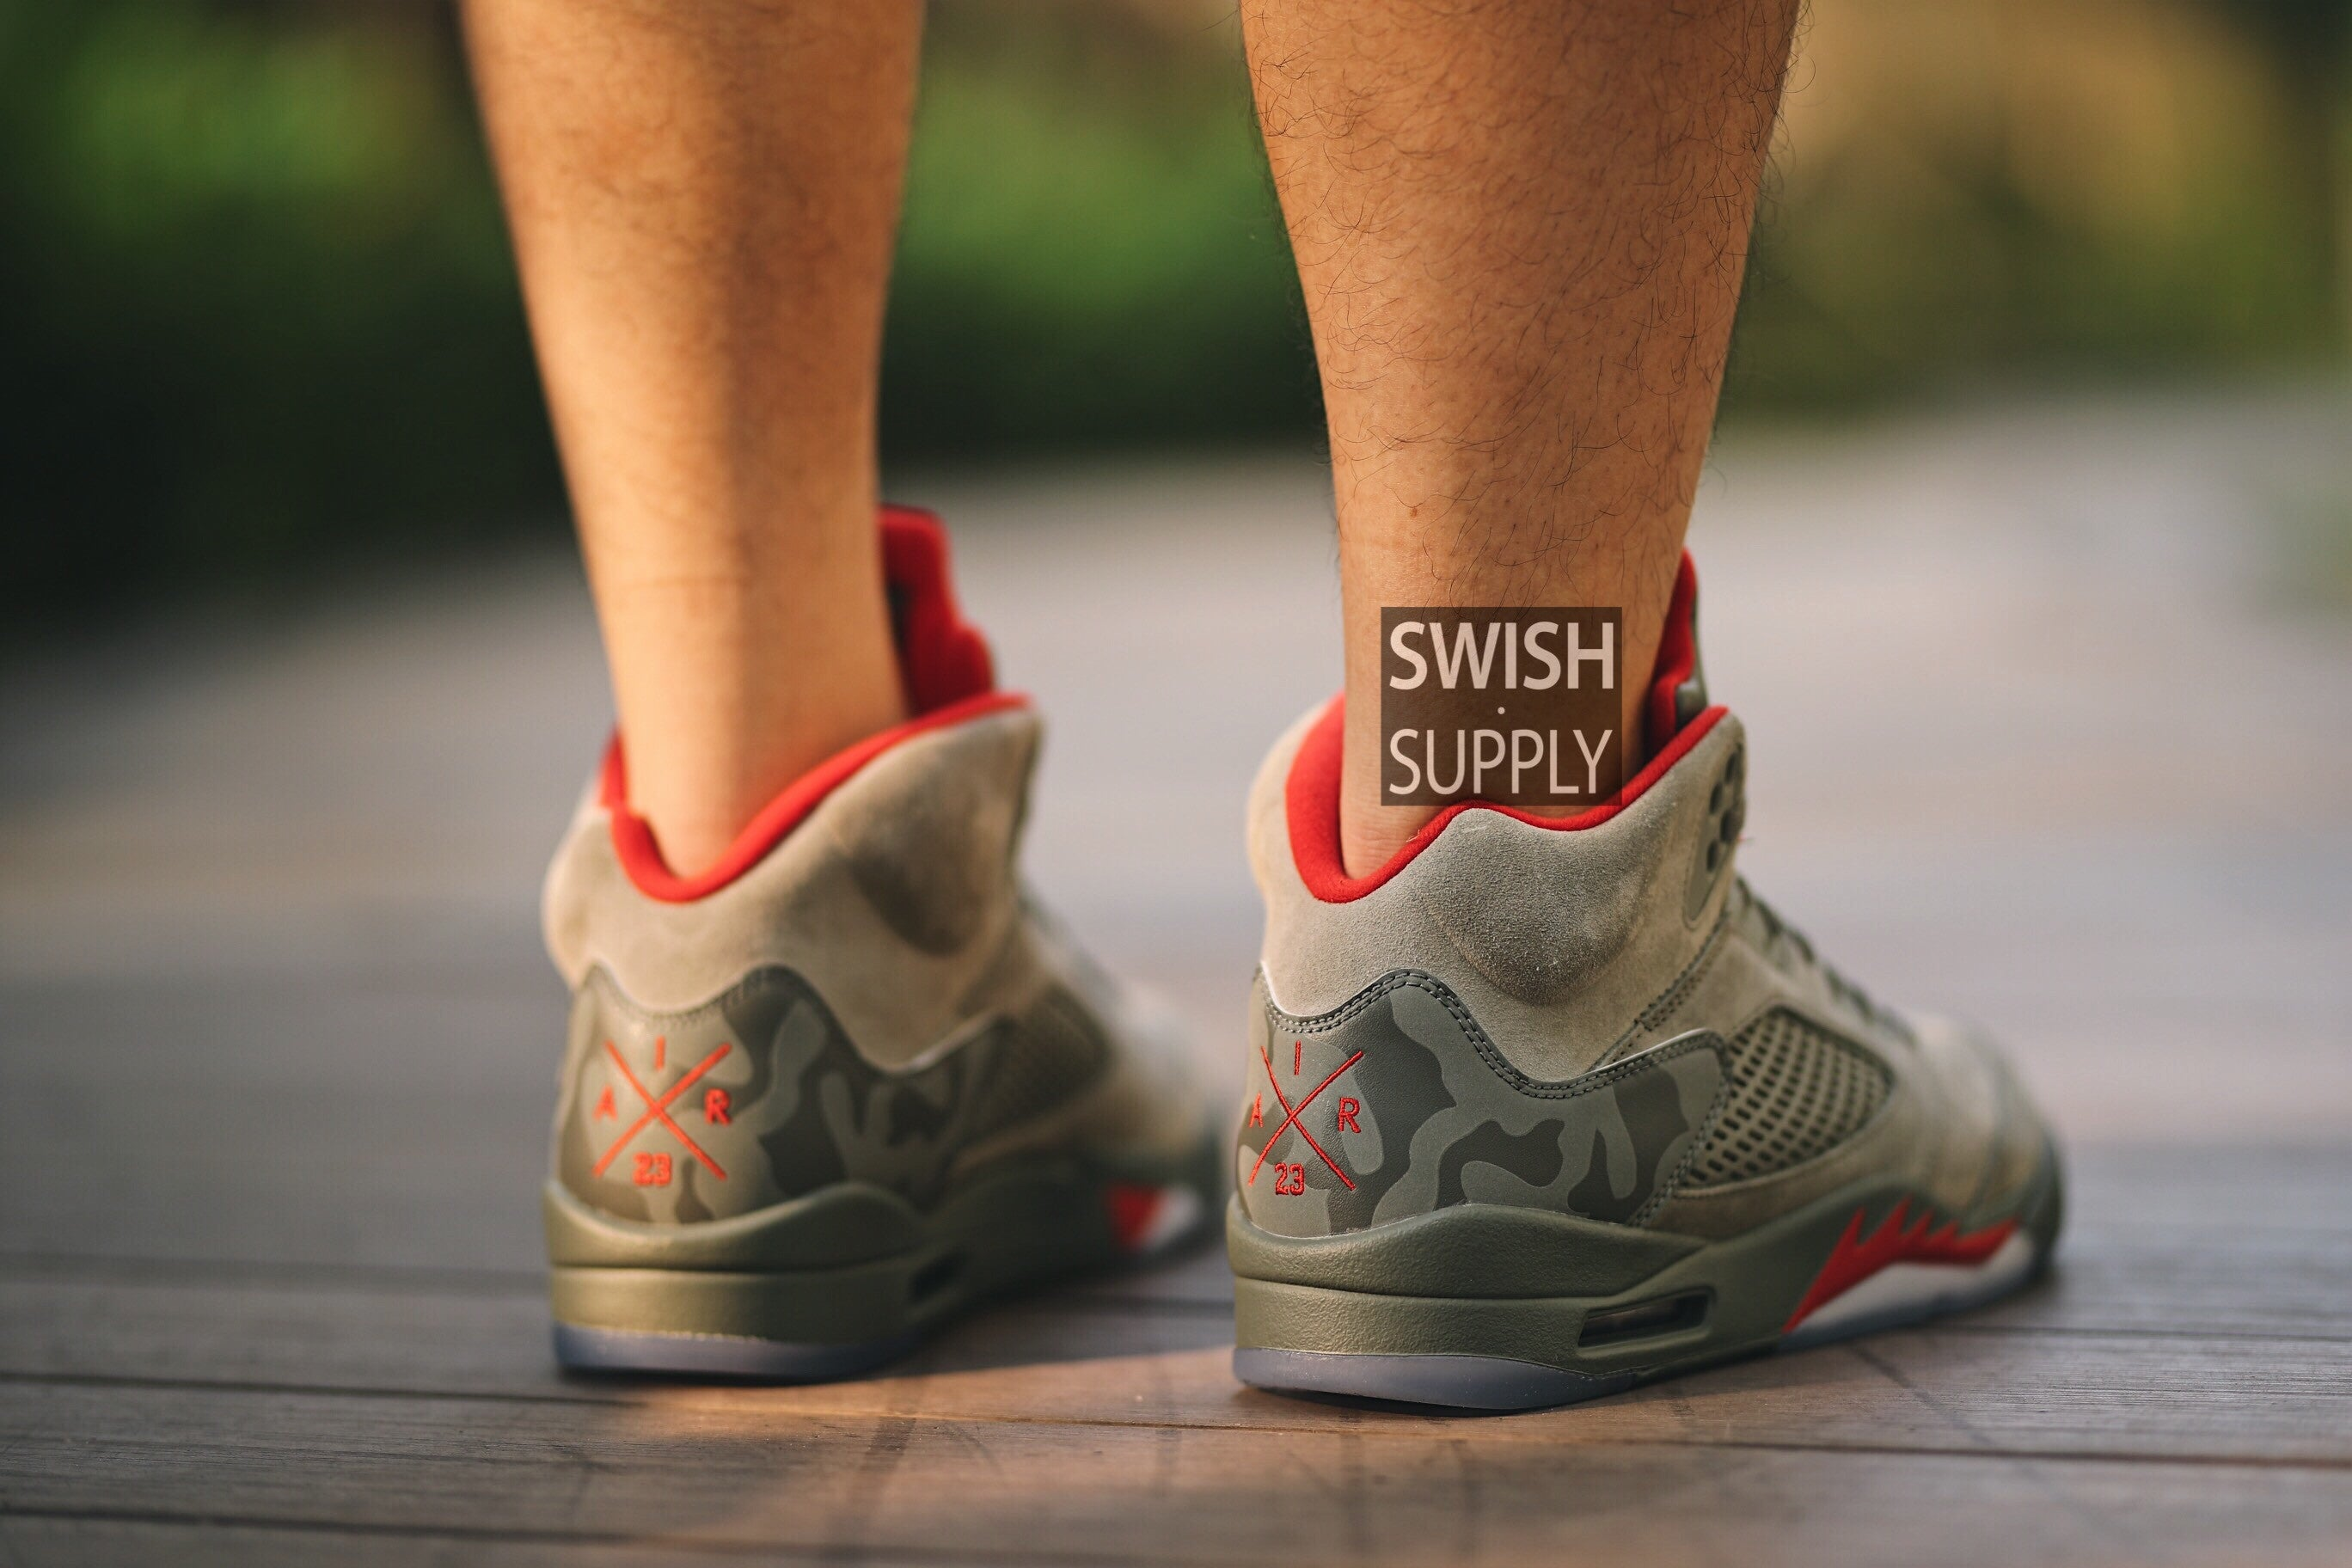 https://swishsupply.com/products/air-jordan-5-olive-suede-camo